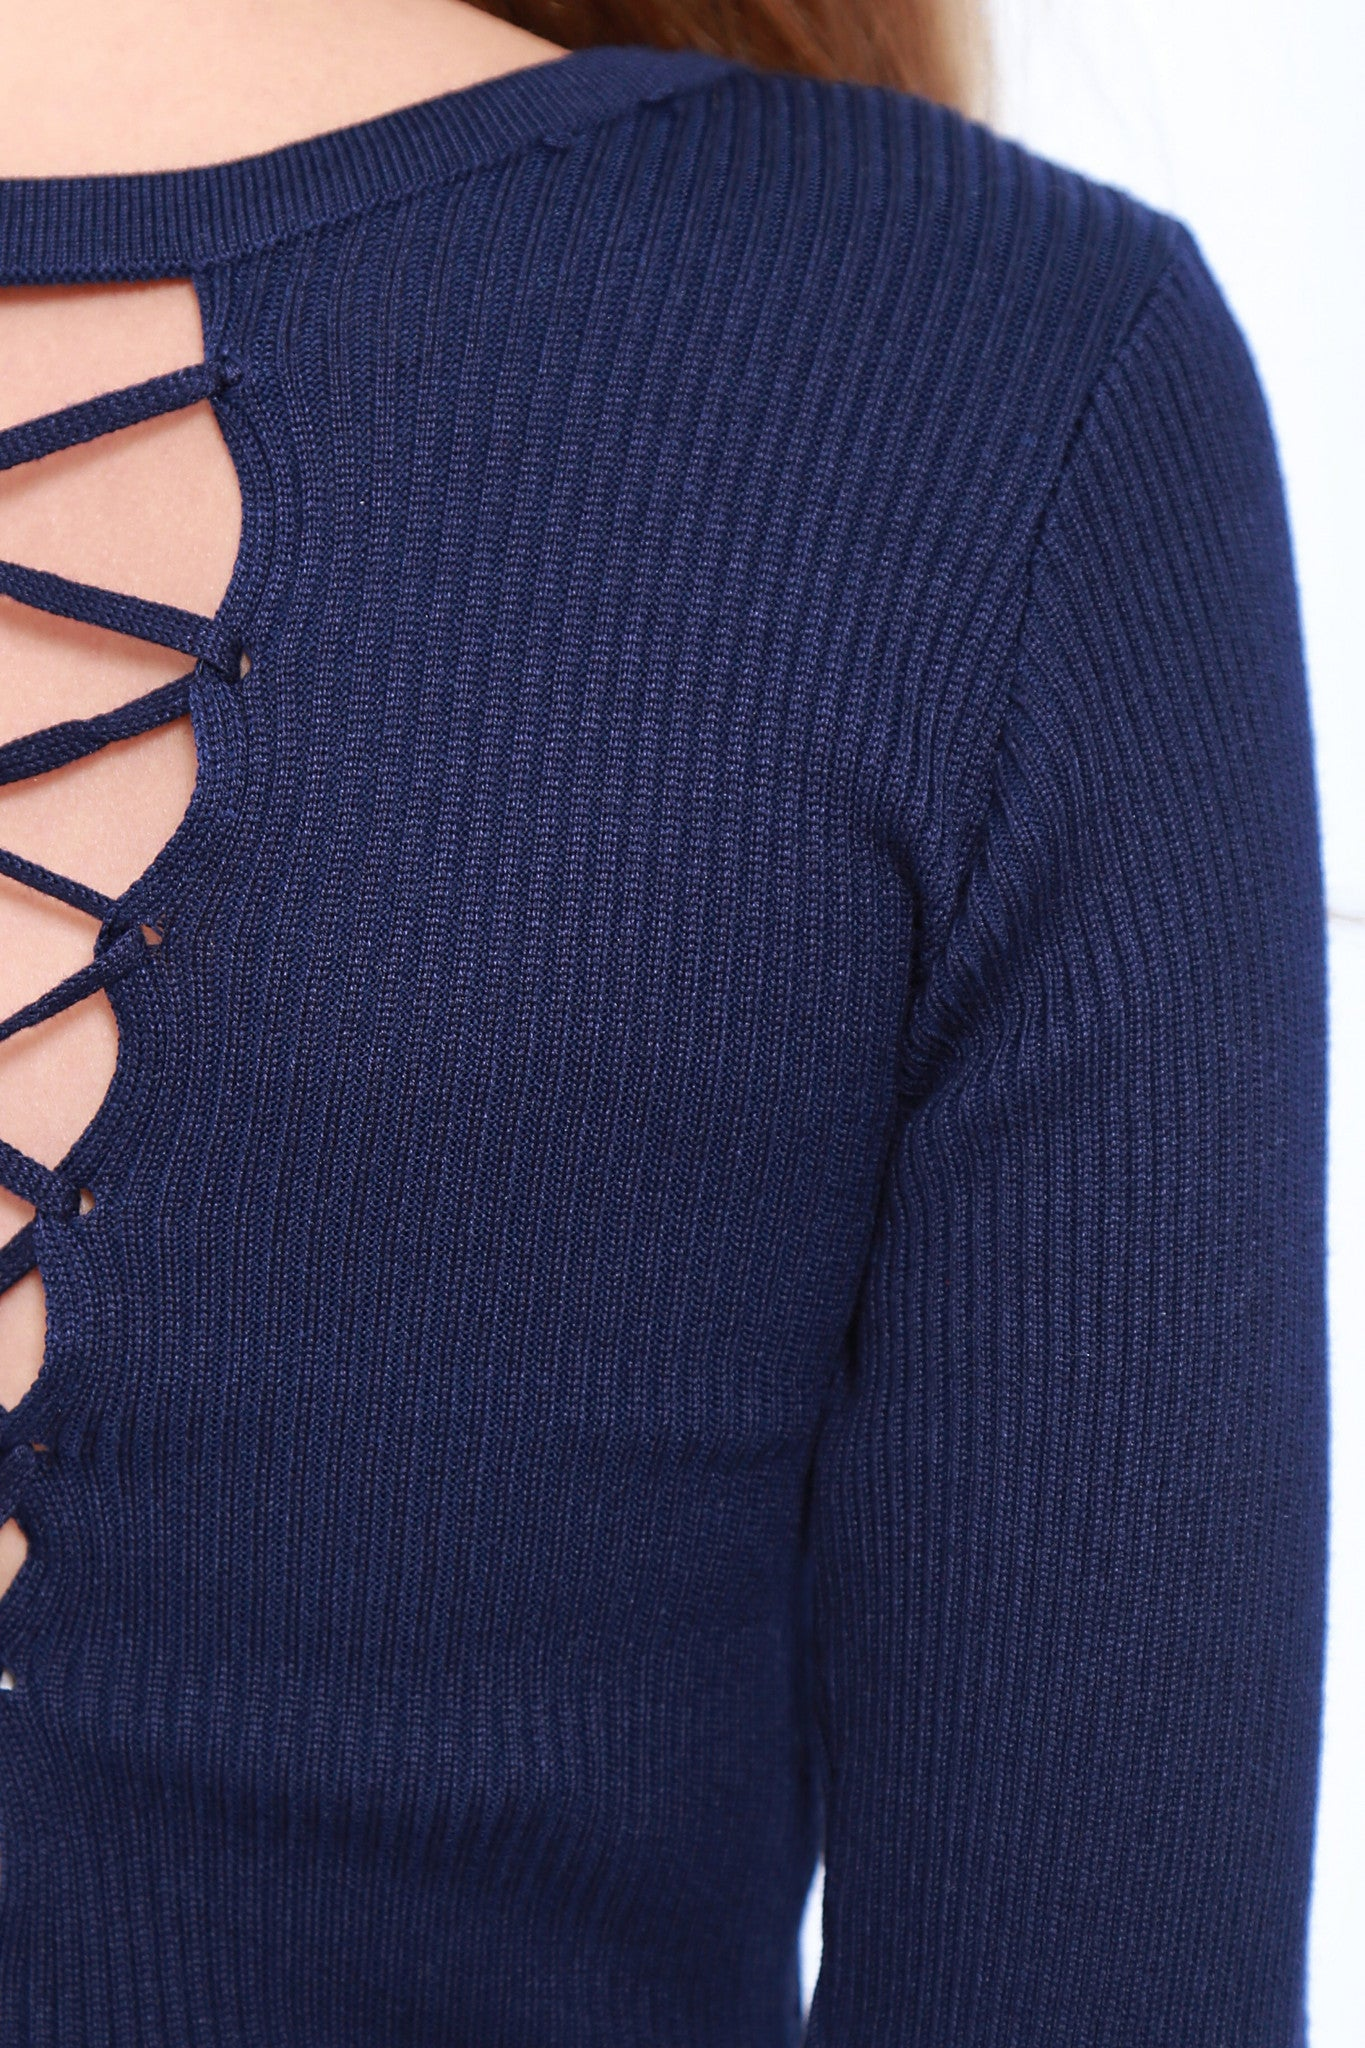 TWO WAY LACED UP KNIT TOP IN NAVY